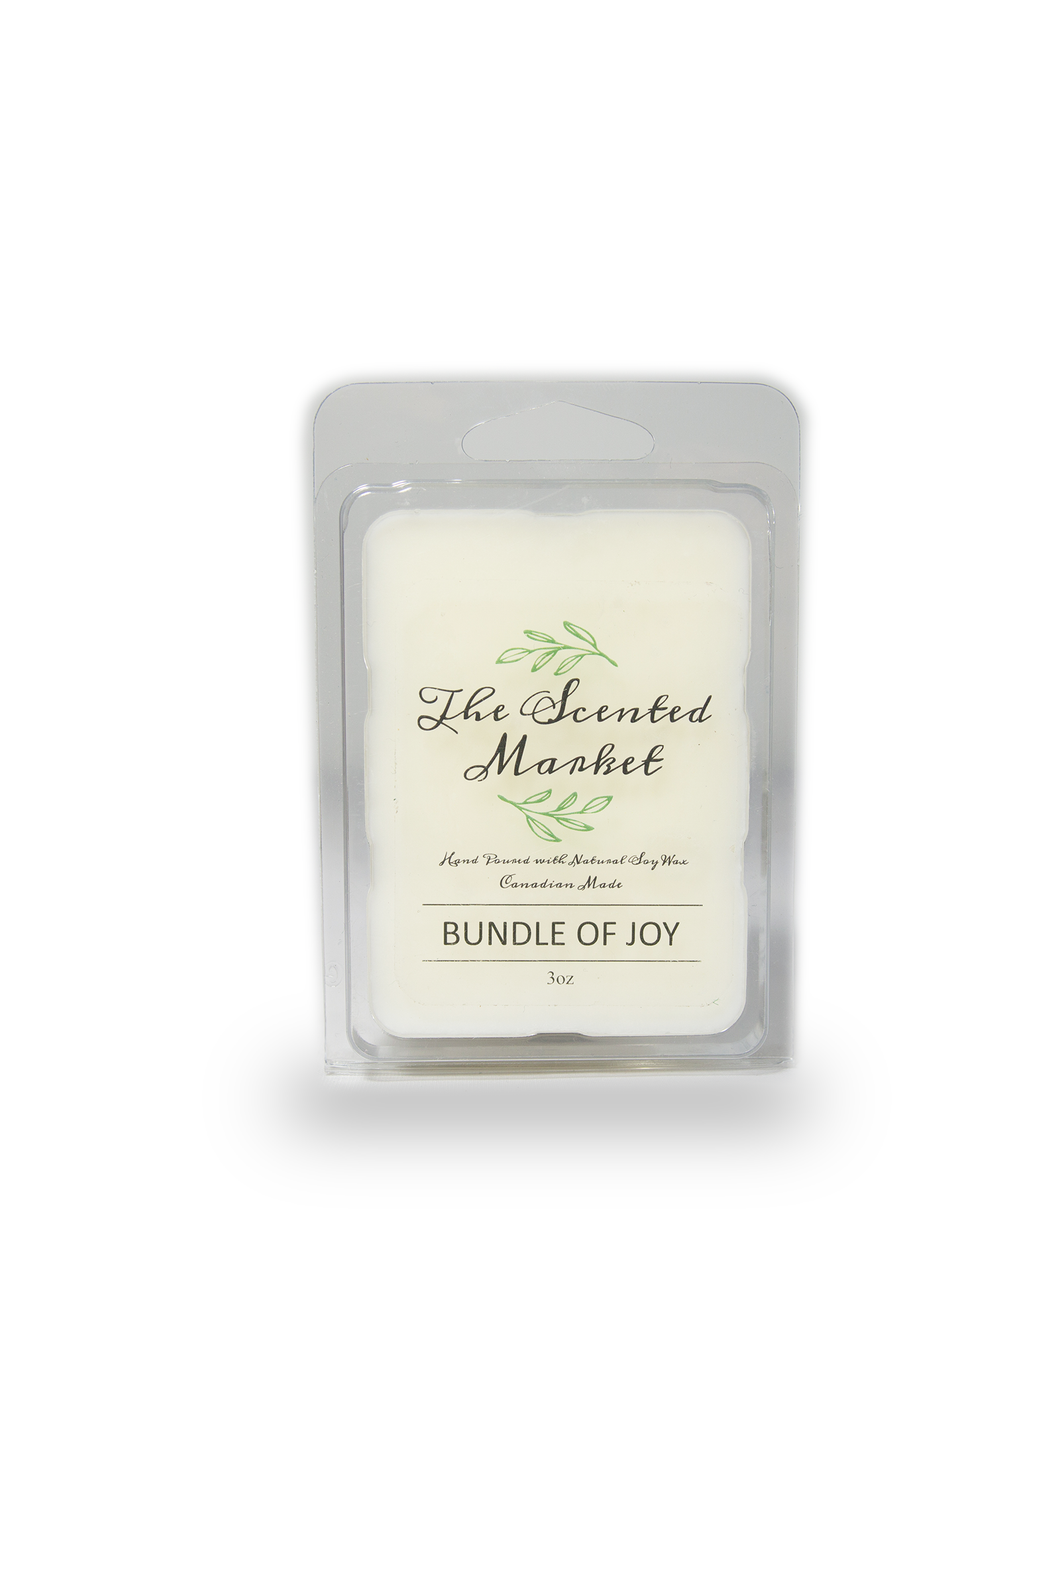 BUNDLE OF JOY SOY WAX MELT